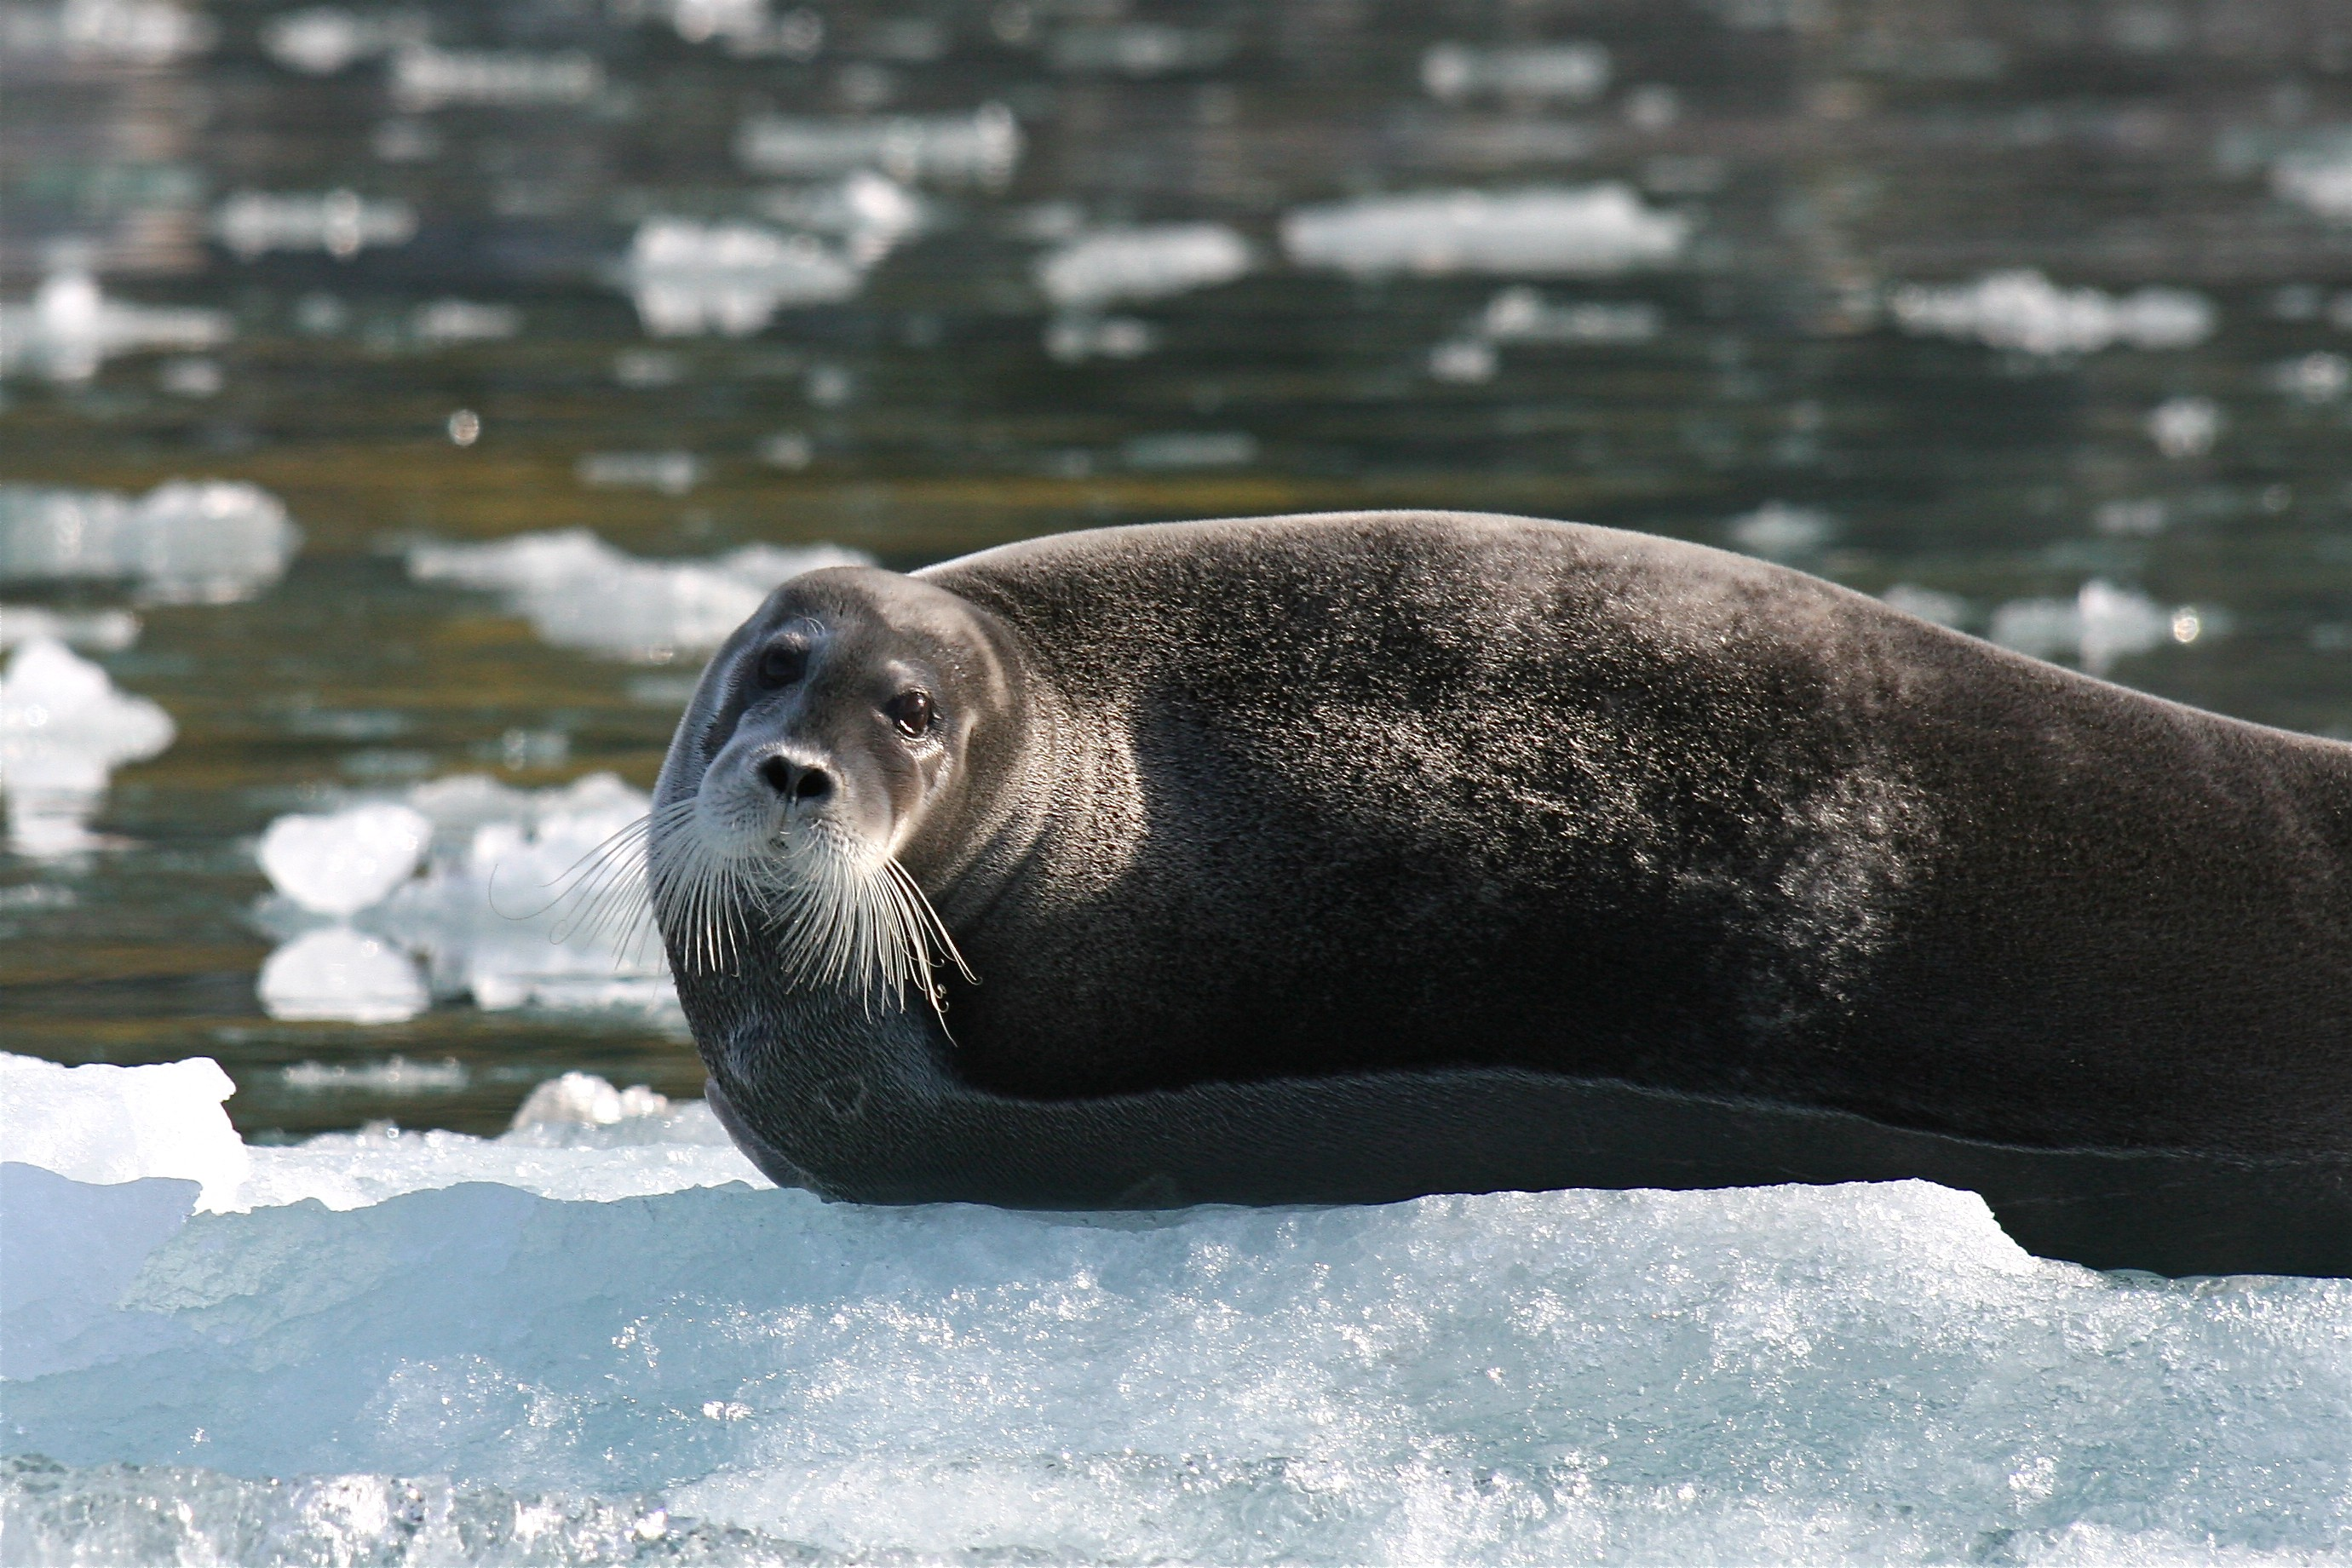 Close up of a plump brown seal with whiskers, hauled out on ice.